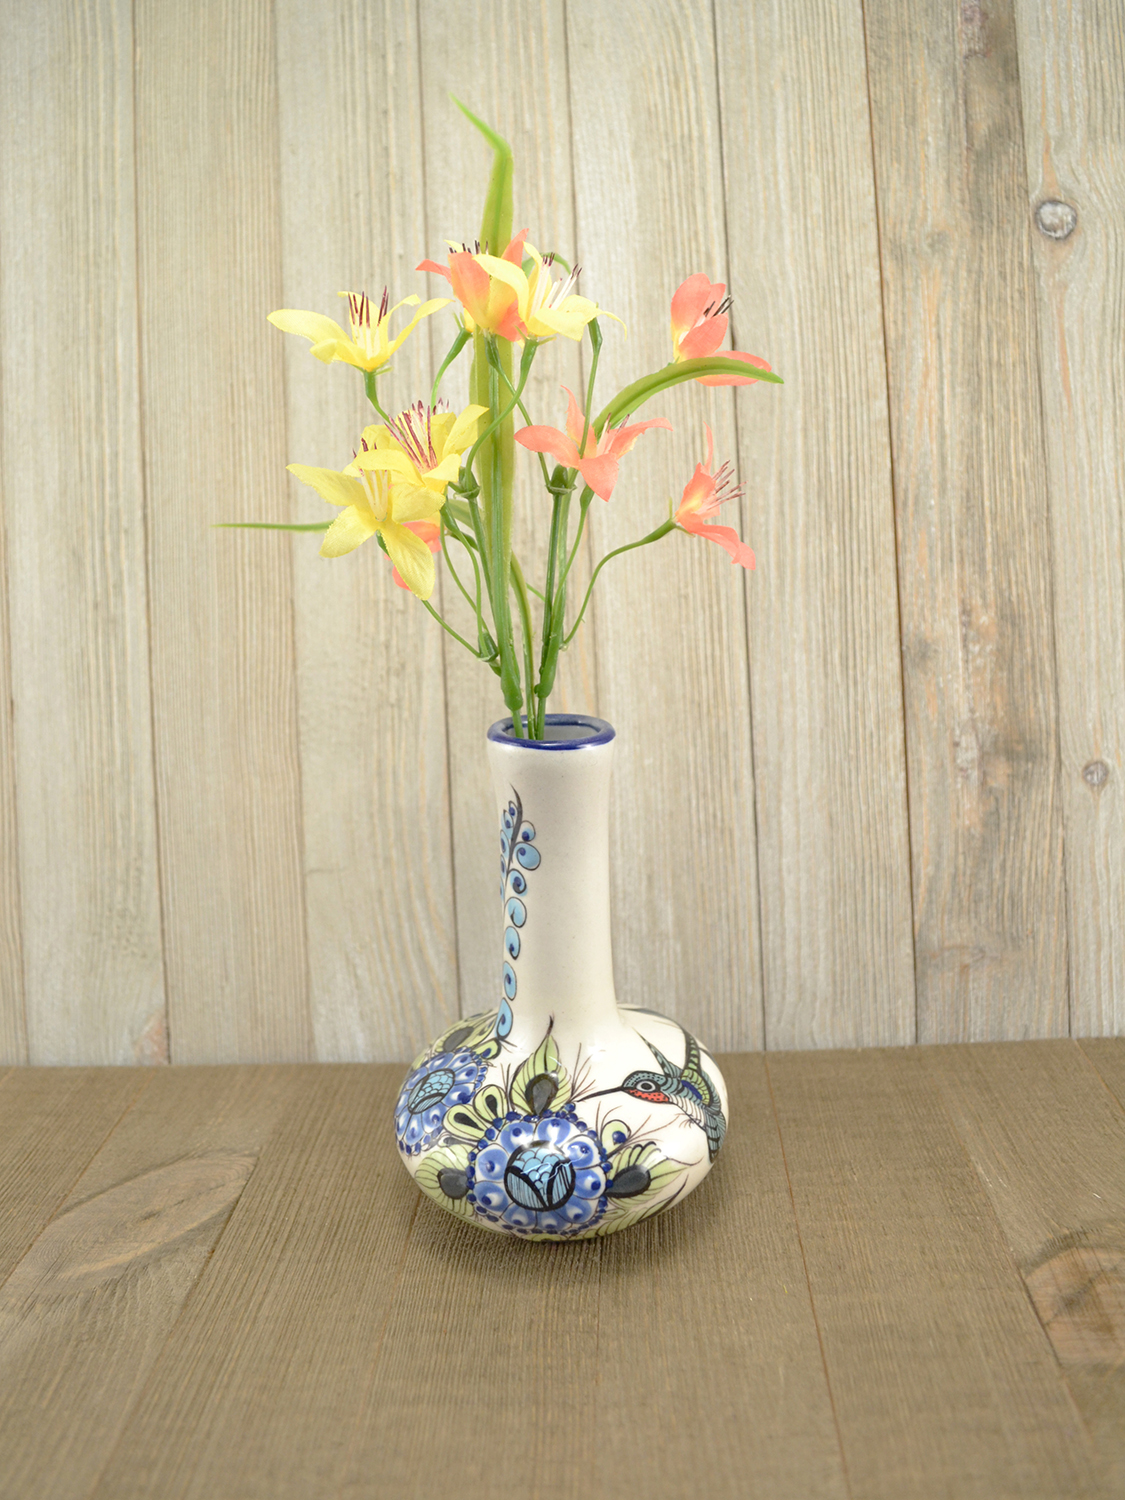 Wild Bird Bud Vase with flowers